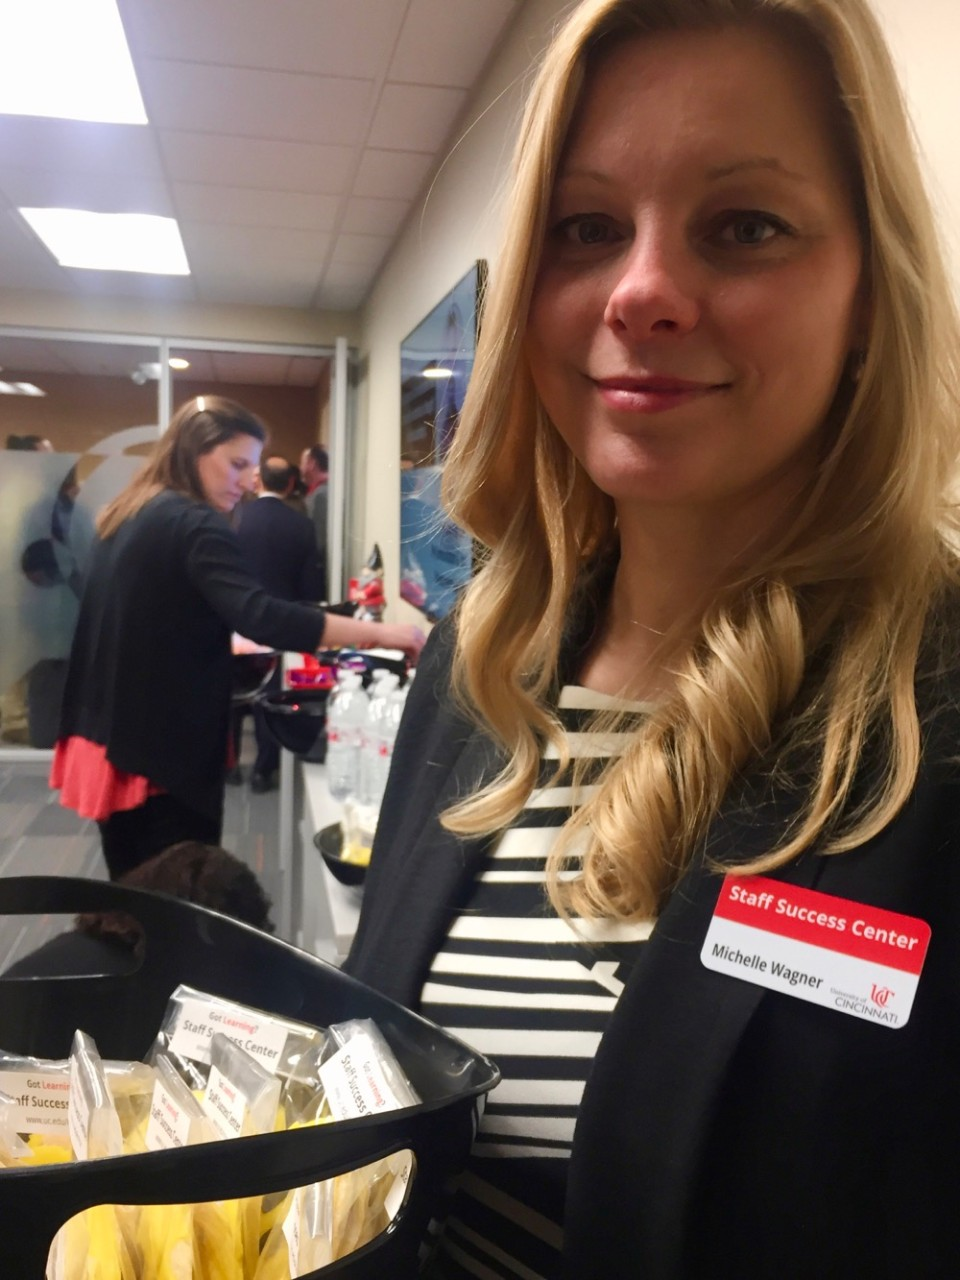 UC Staff Success Center's Michelle Wagner holds a basket of cookies at the ribbon cutting event.